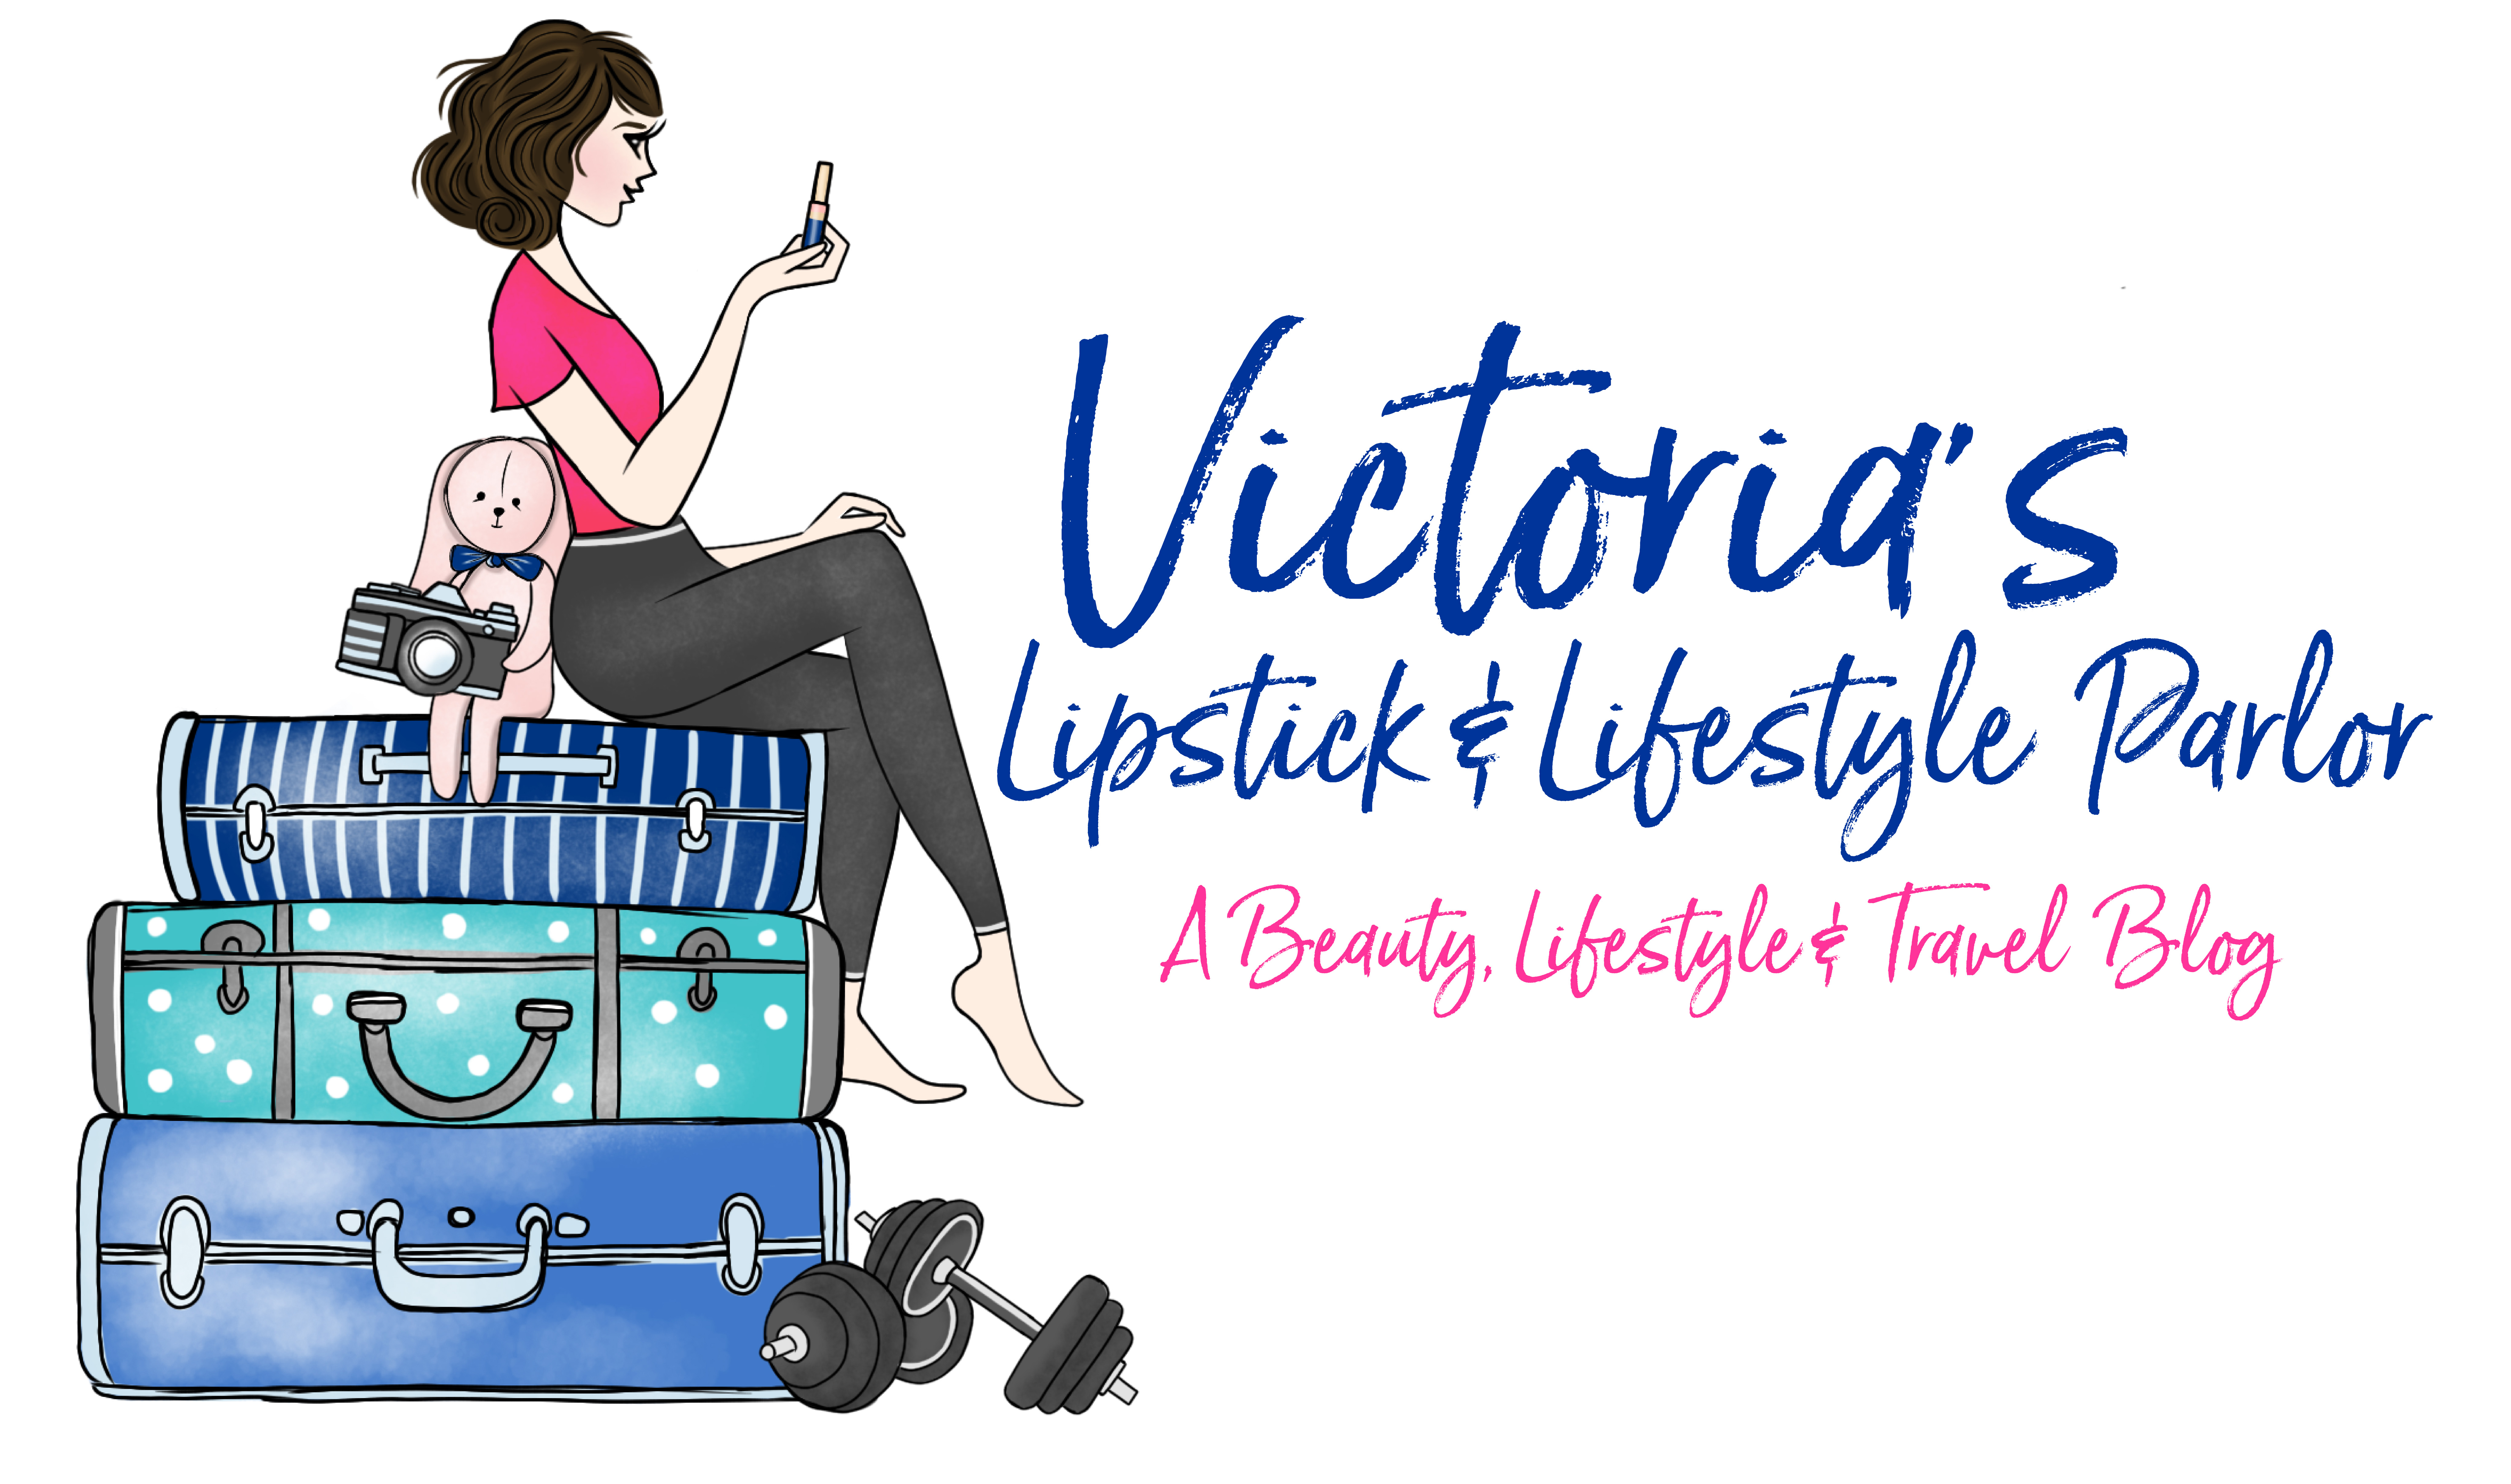 Victoria's Lipstick parlor with SeneGence